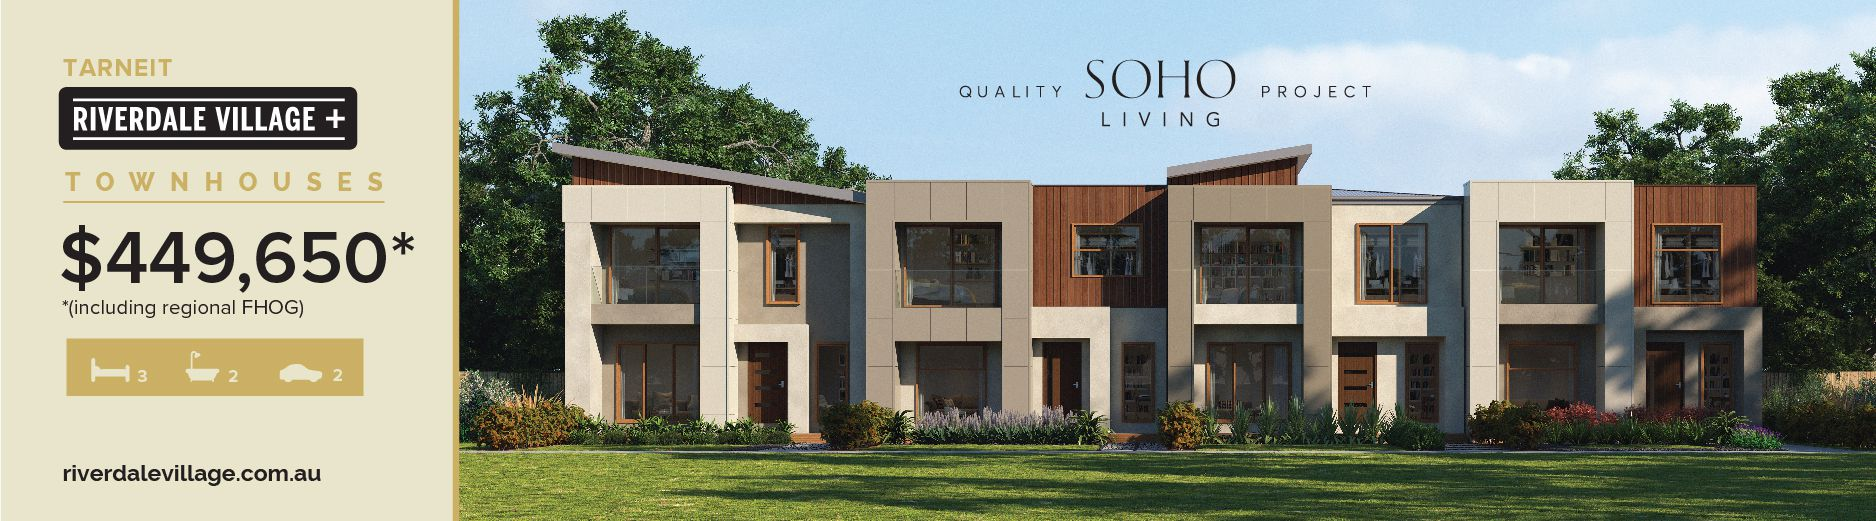 Riverdale Village Townhouses, Tarneit